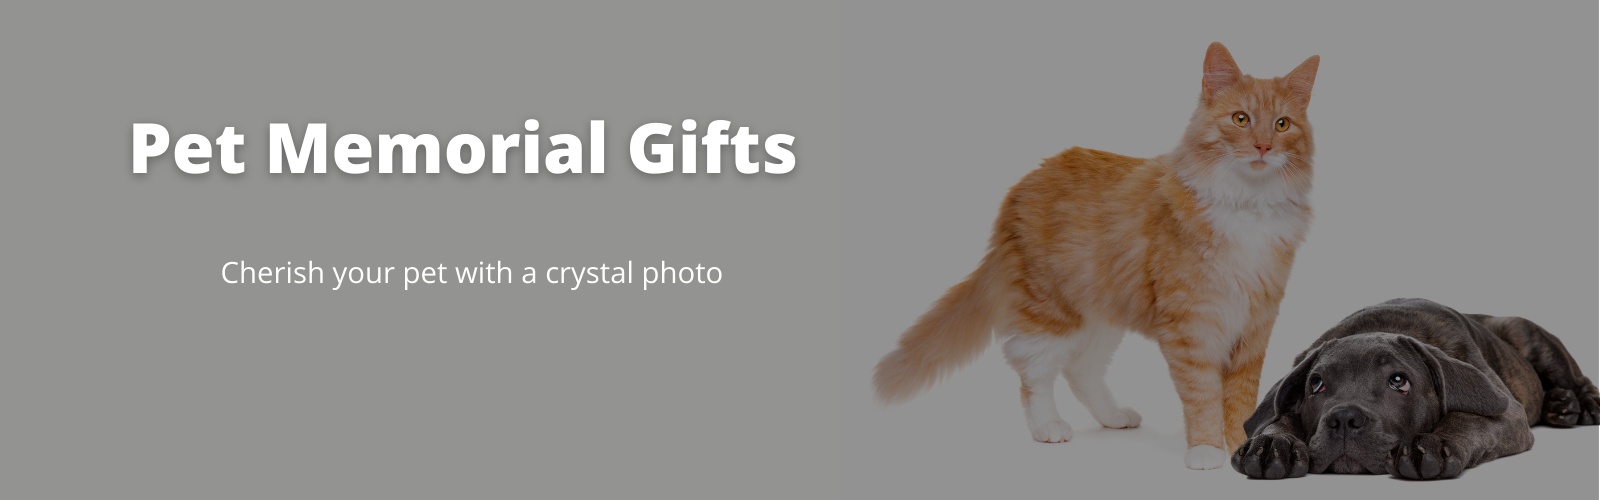 Shop Pet Memorial Gifts From Crystal Prints